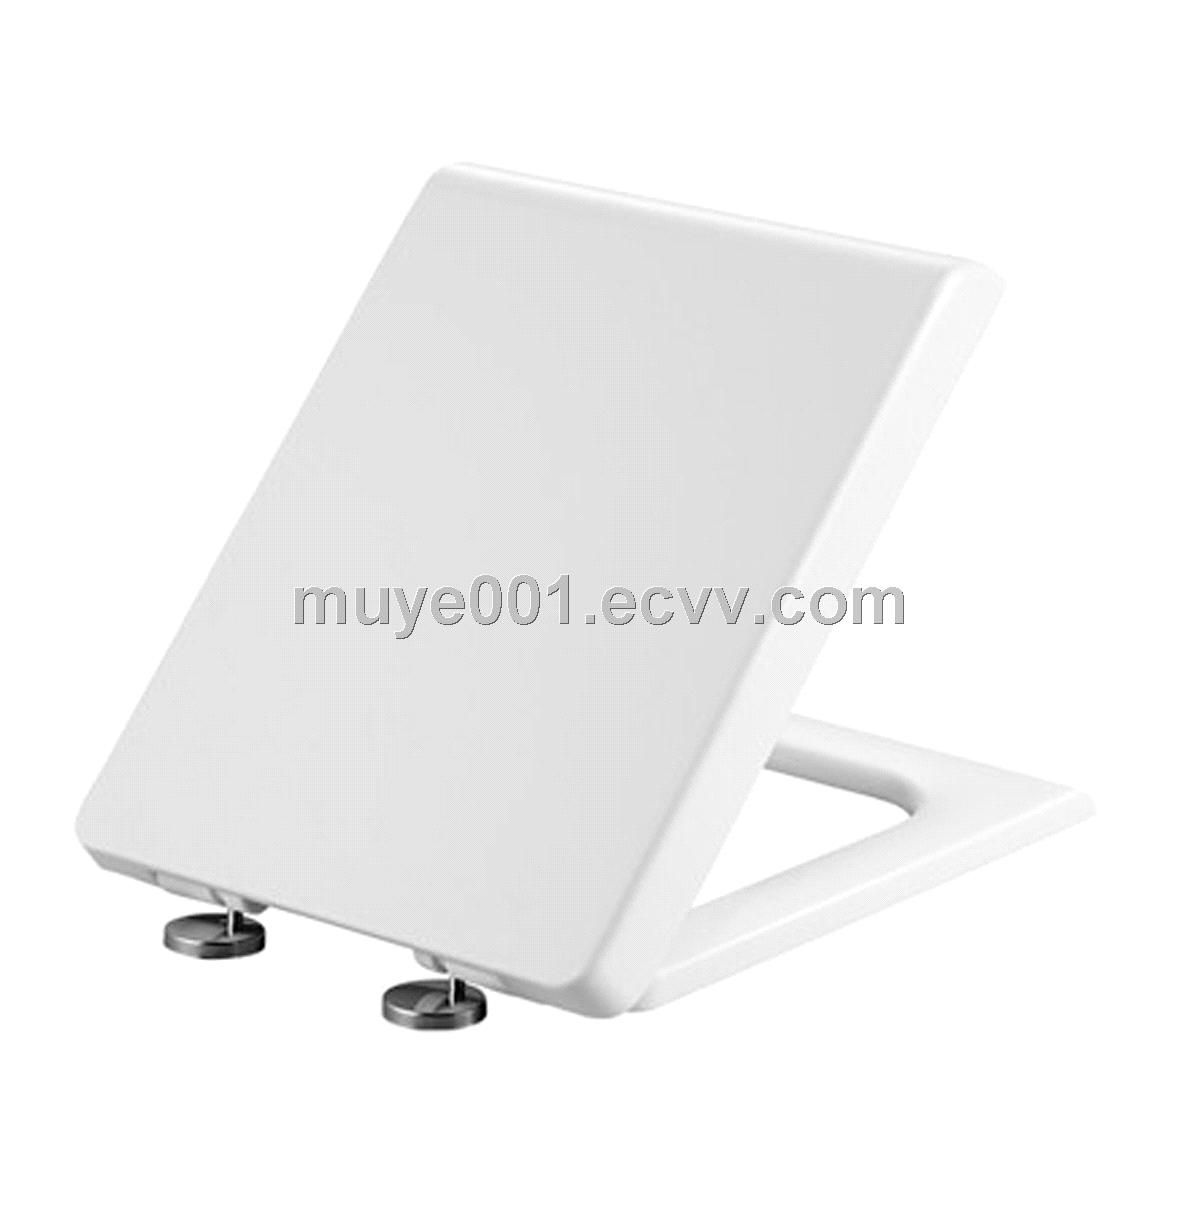 Pleasing Square Stainless Steel Hinge Soft Close Toilet Seats Cover Evergreenethics Interior Chair Design Evergreenethicsorg